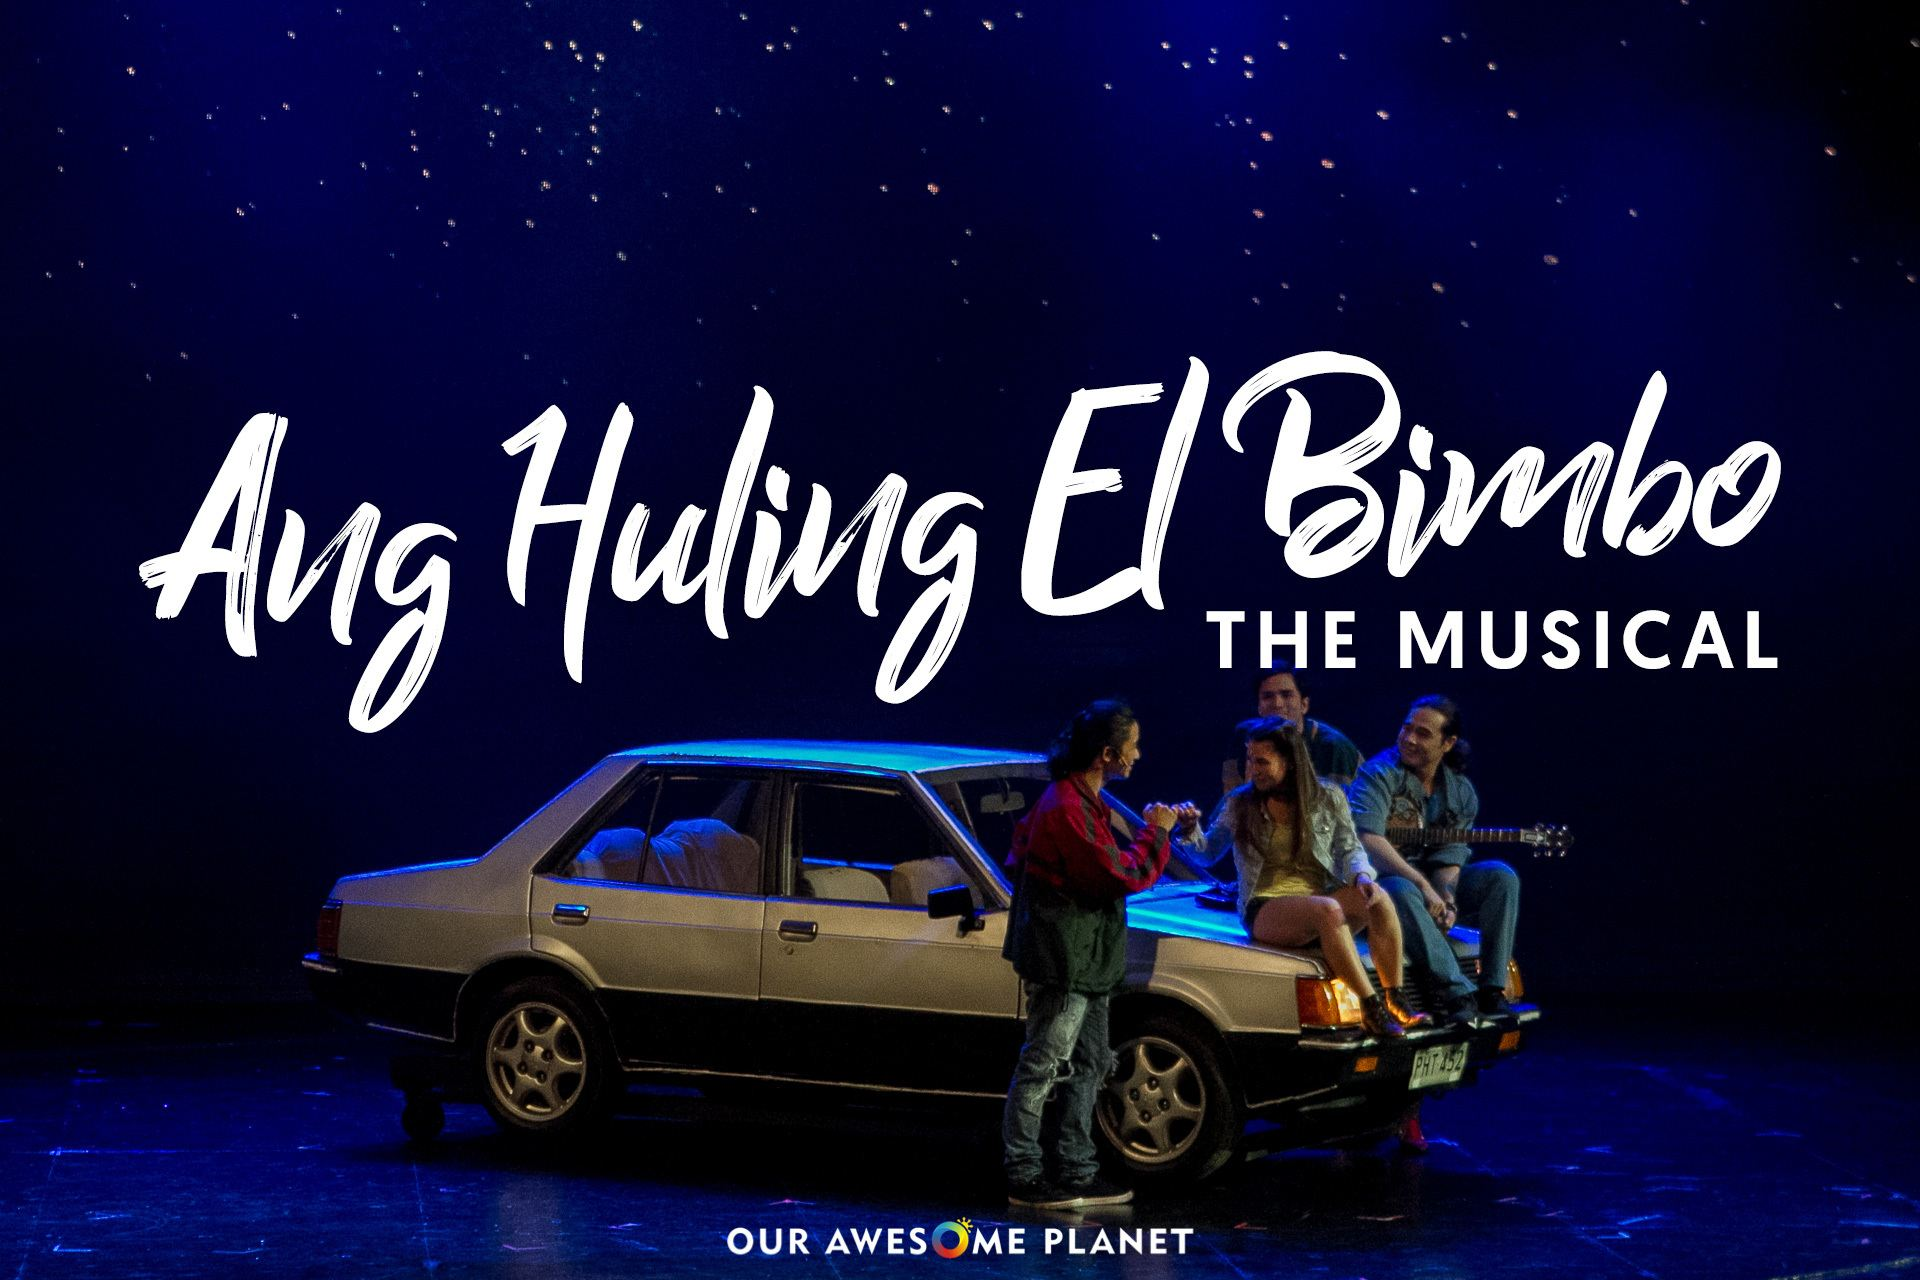 ANG HULING EL BIMBO: Of Sad Homecomings #AngHulingElBimbo2018 • Our